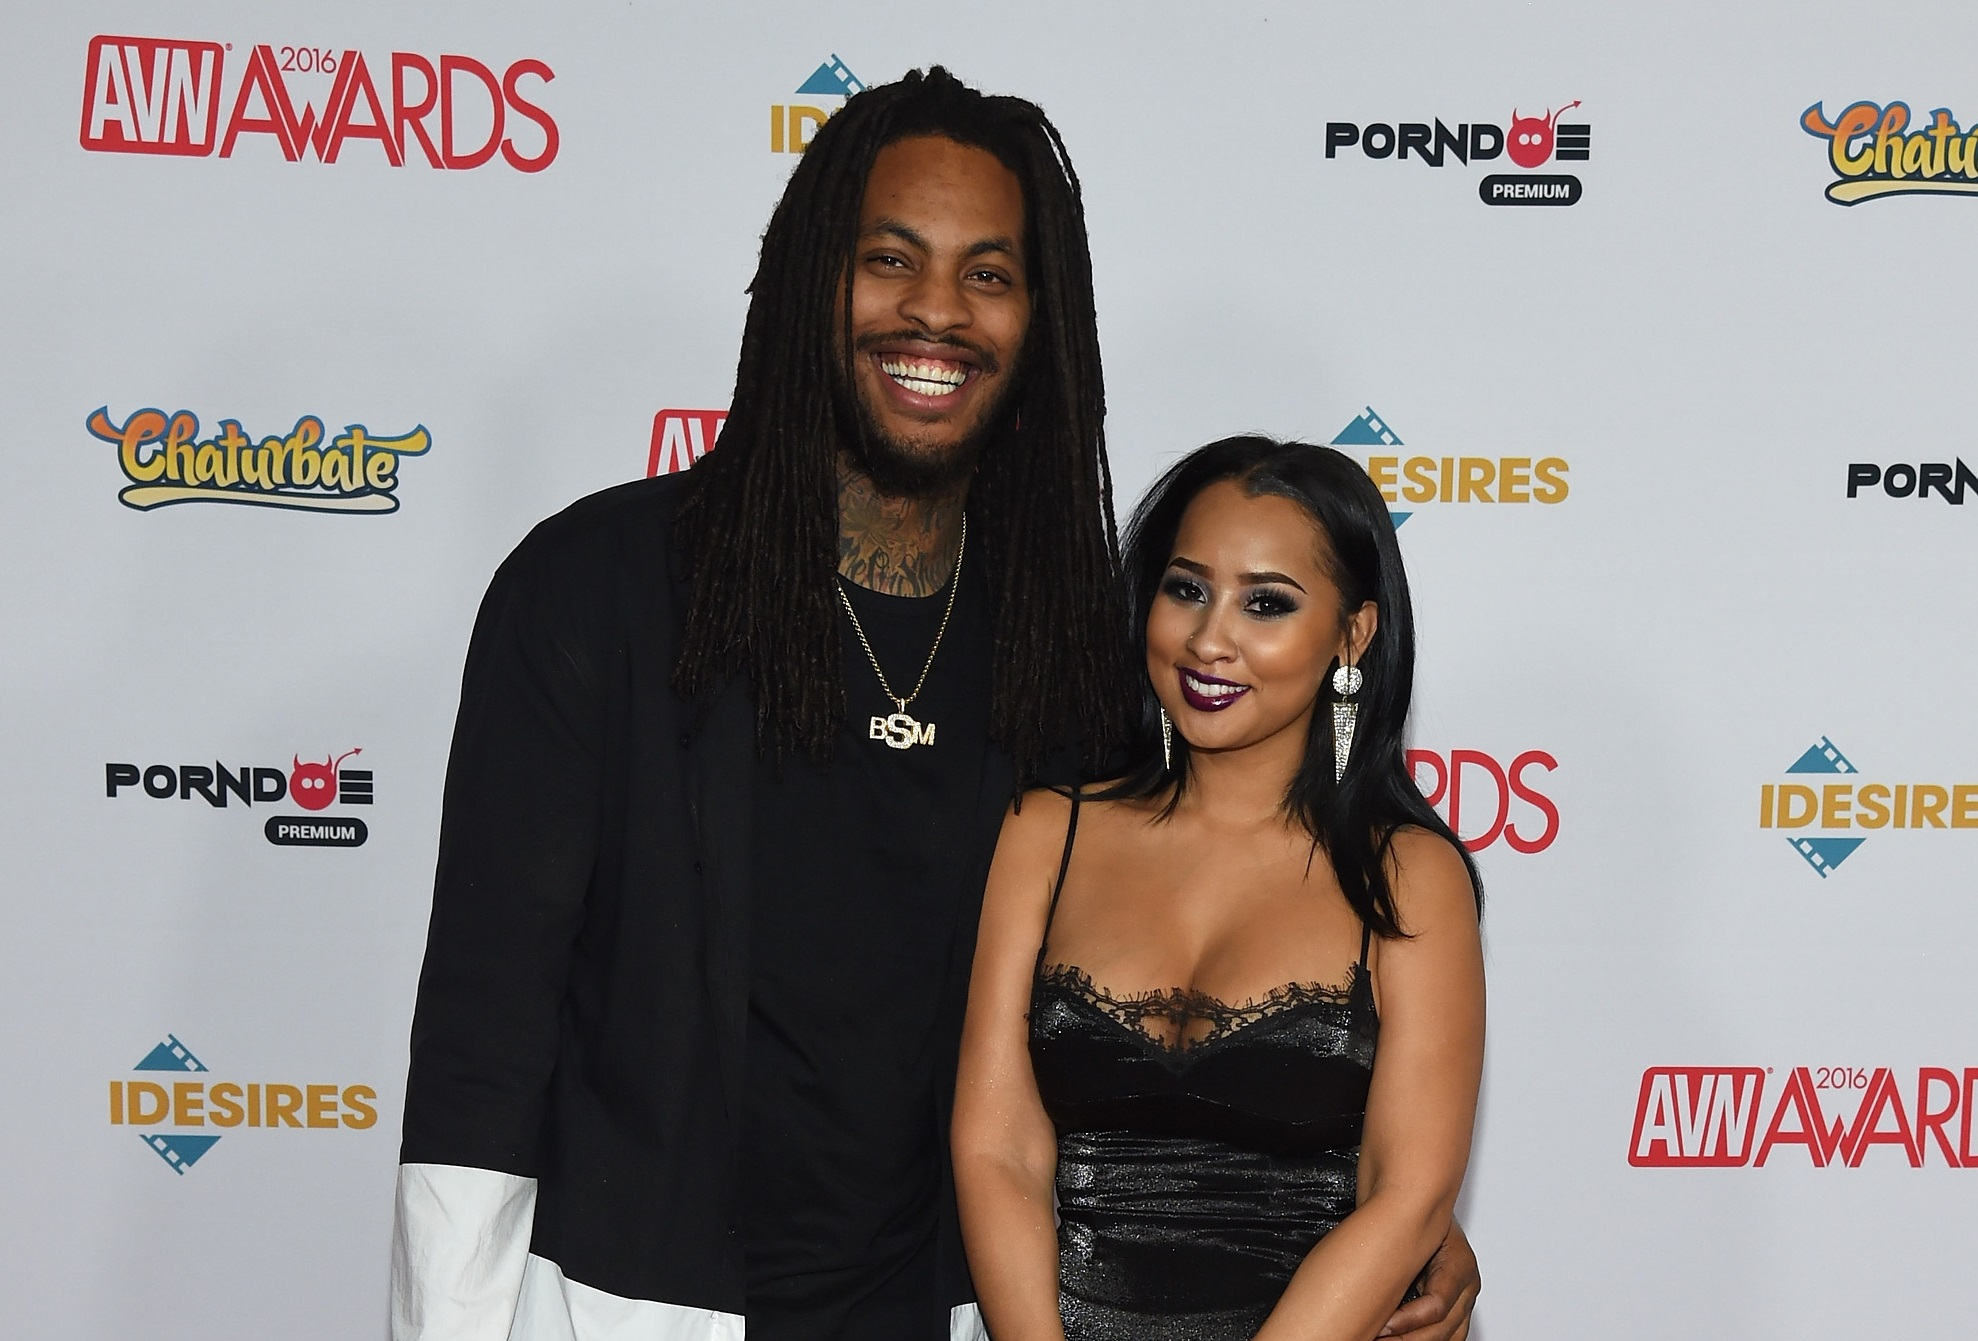 Then boyfriend and girlfriend: Waka Flocka Flame and Tammy Rivera